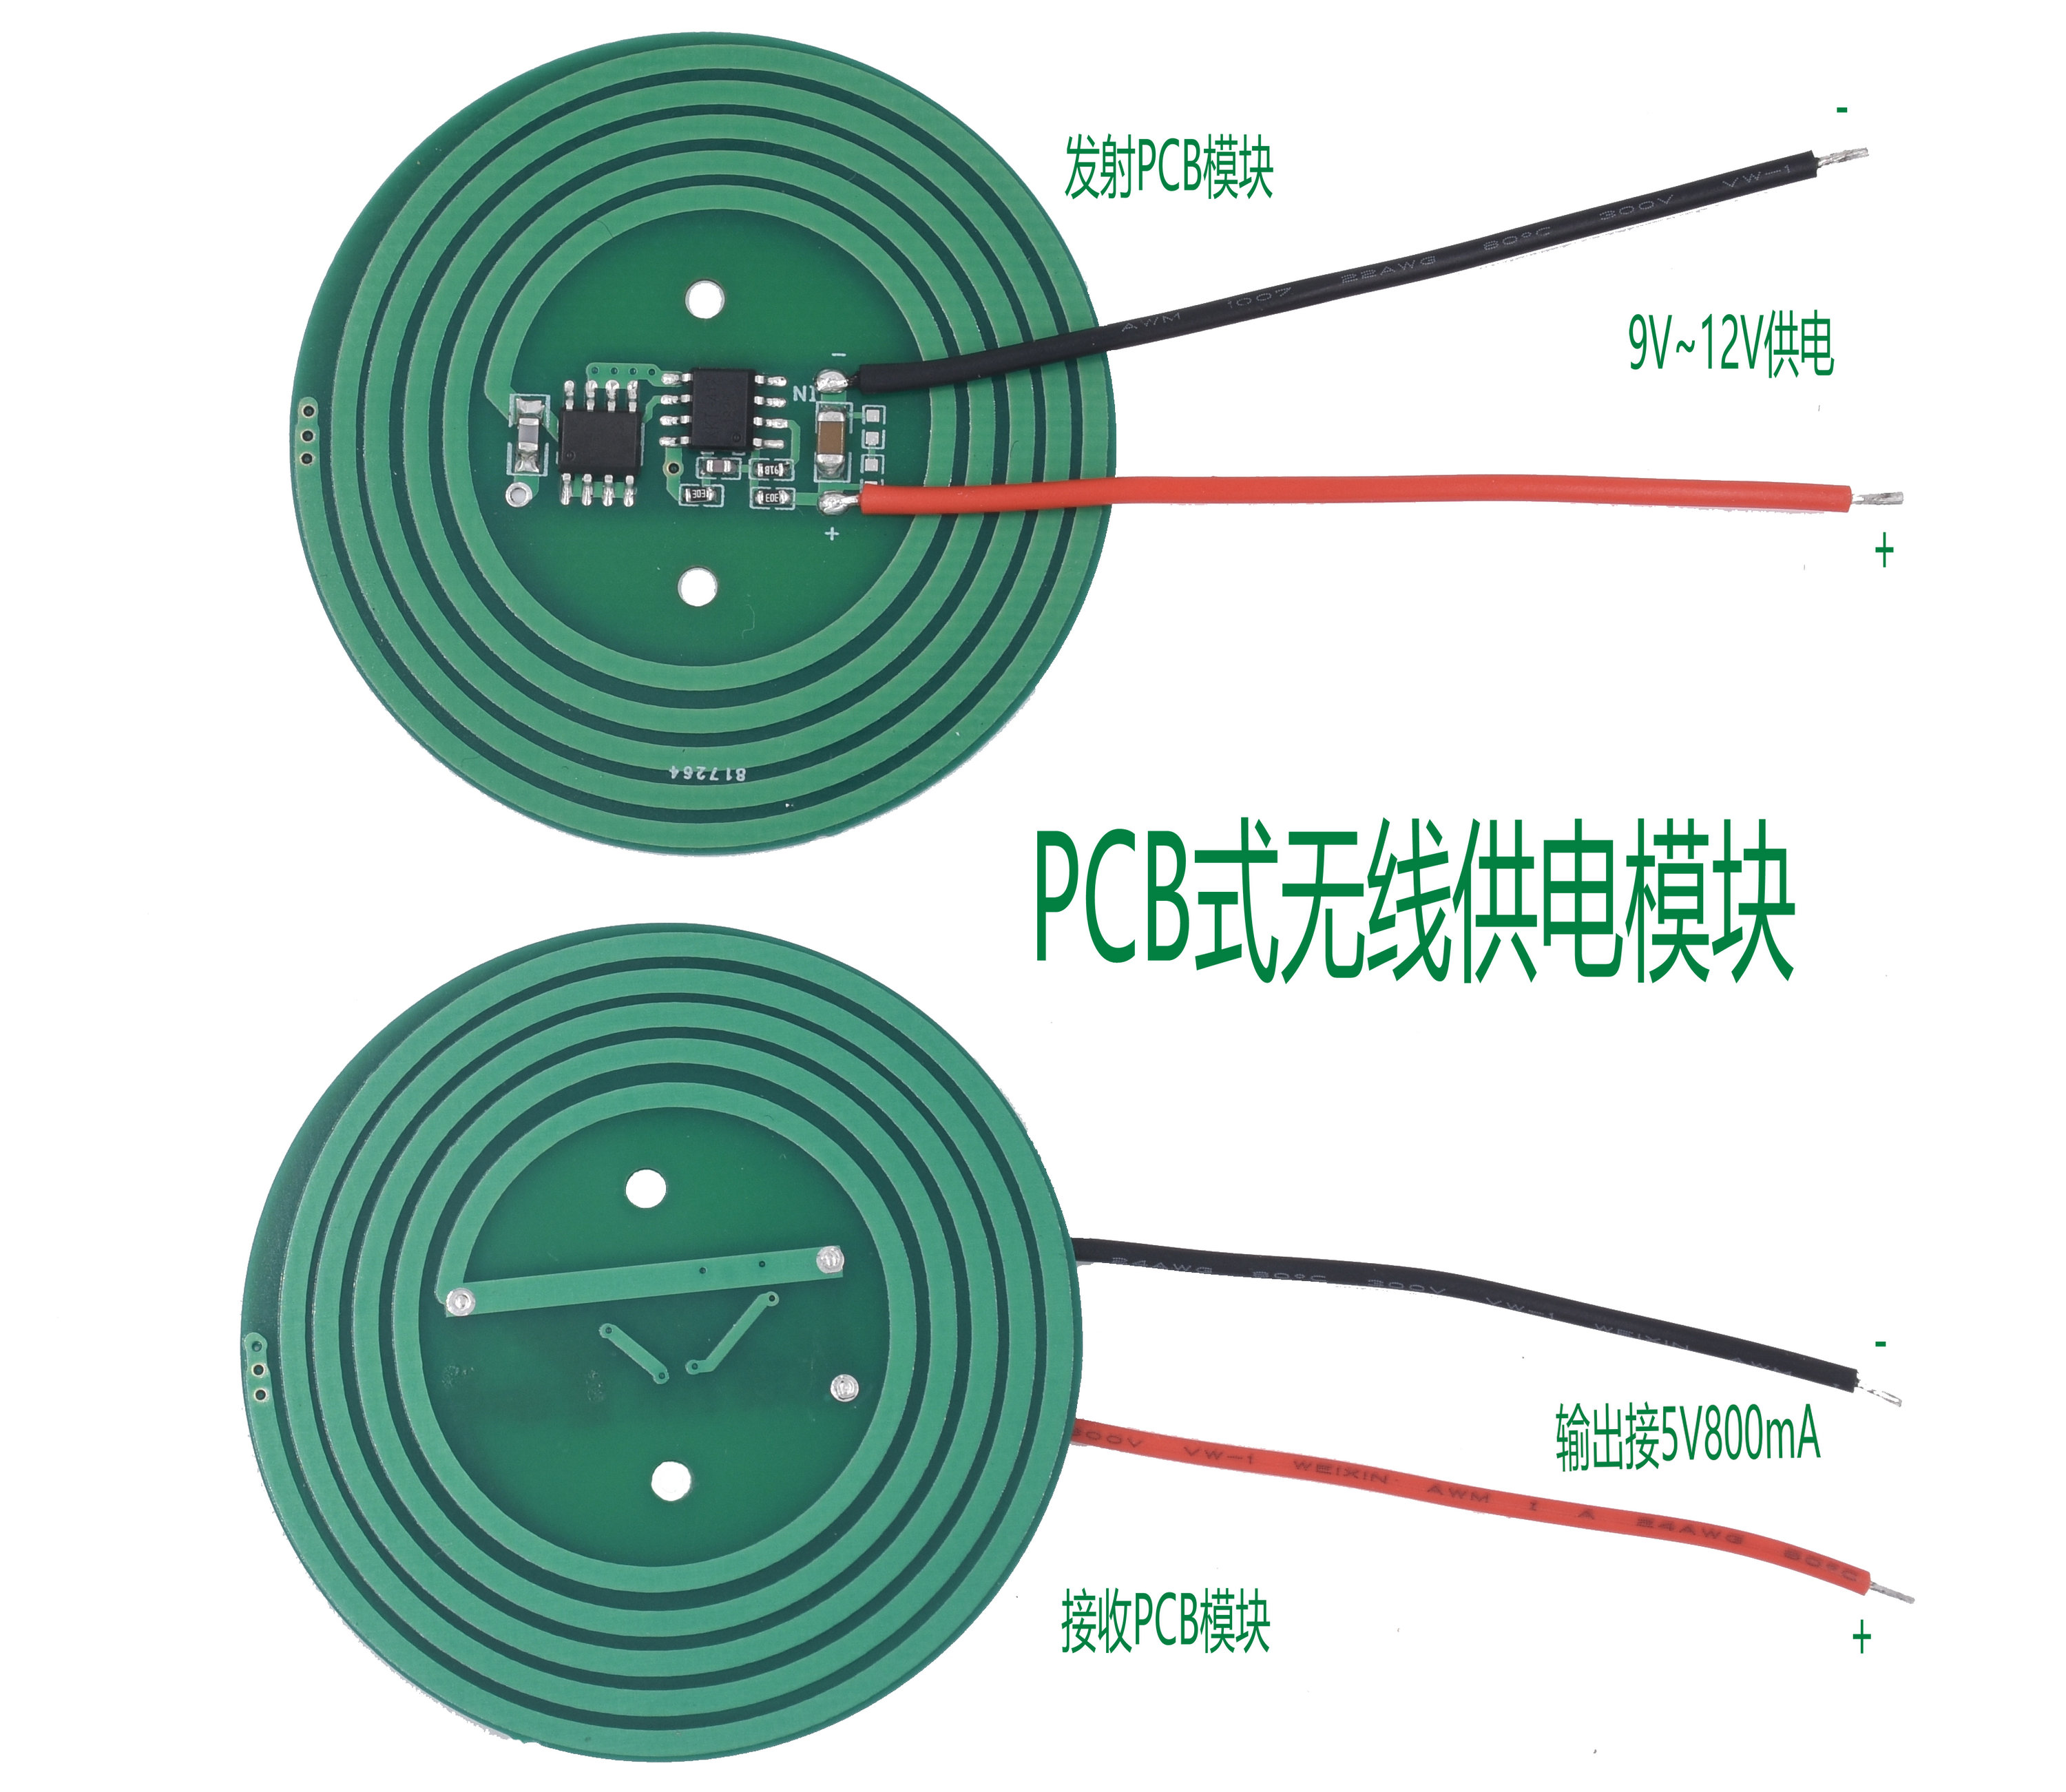 PCB Type 5V800mA Long Distance High Current Wireless Power Wireless Charging Module XKT412-48